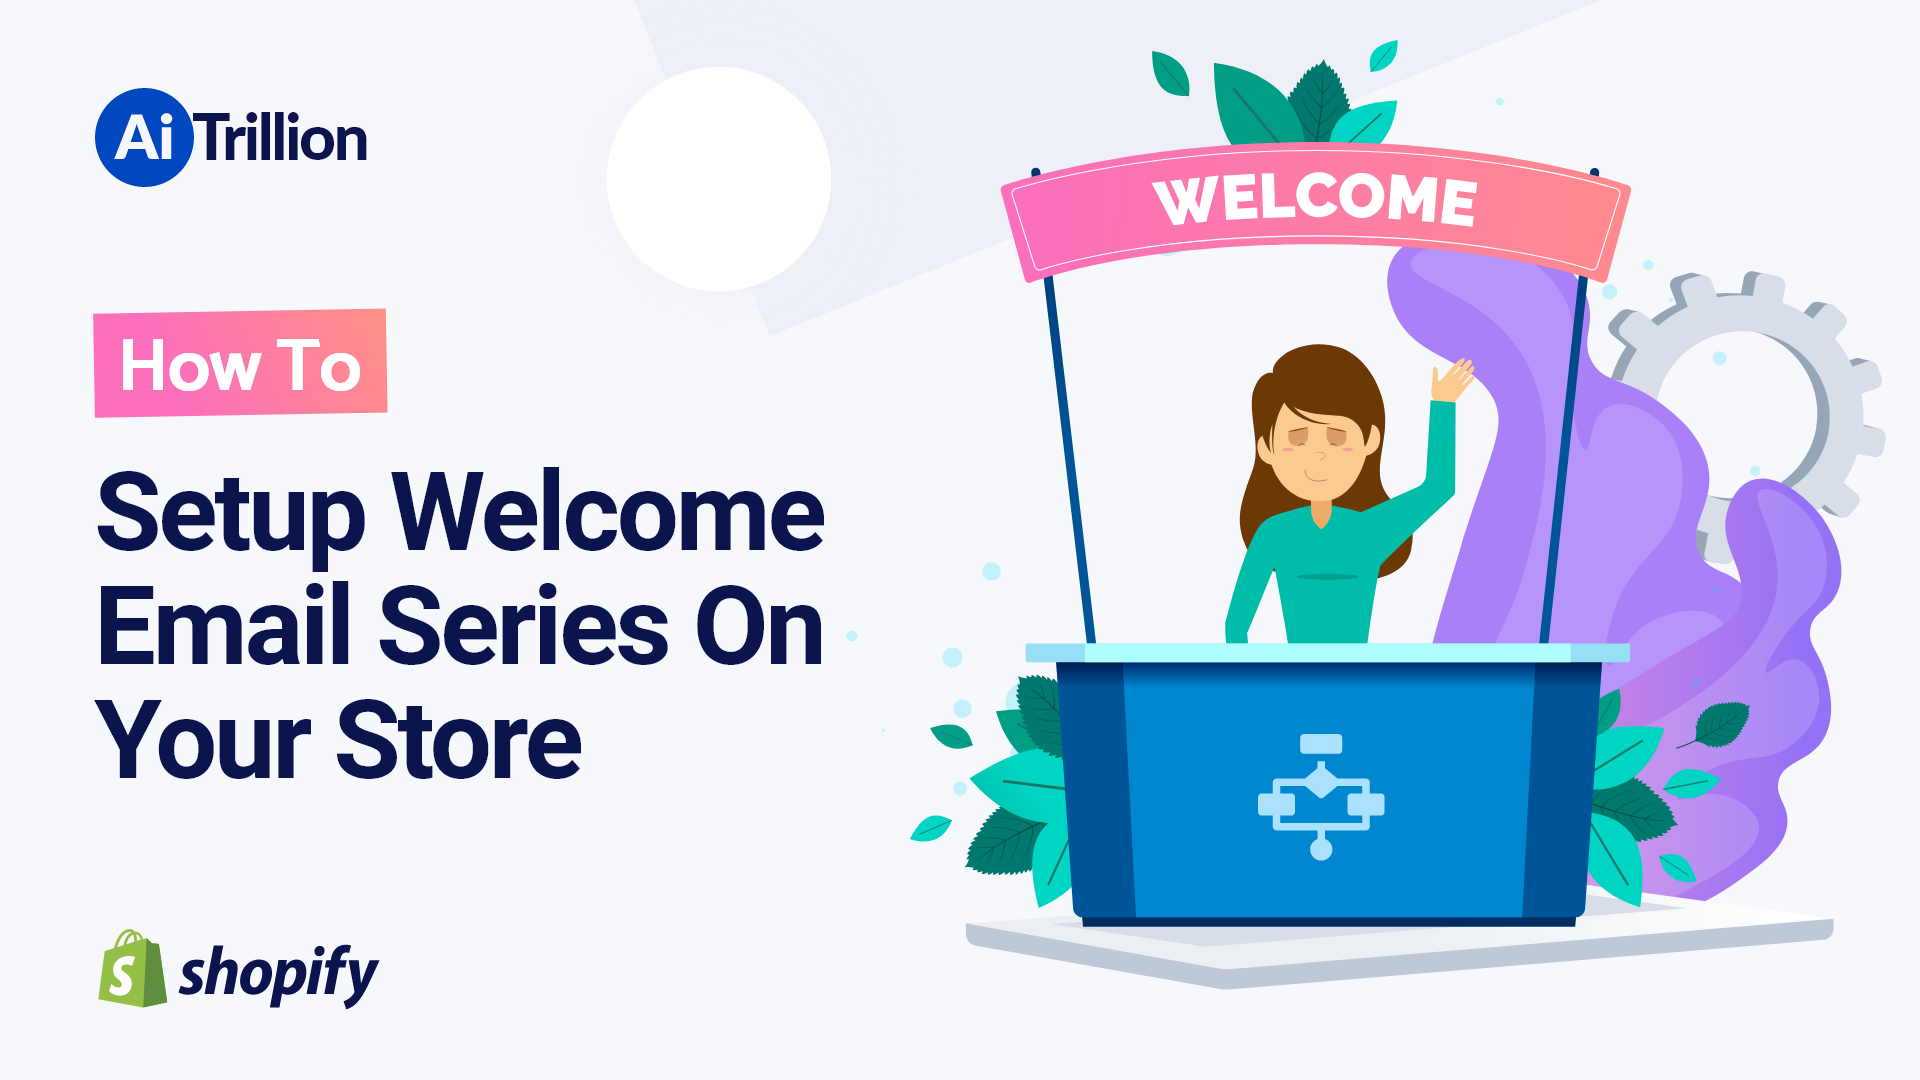 How To Setup Welcome Email Series On Your Store